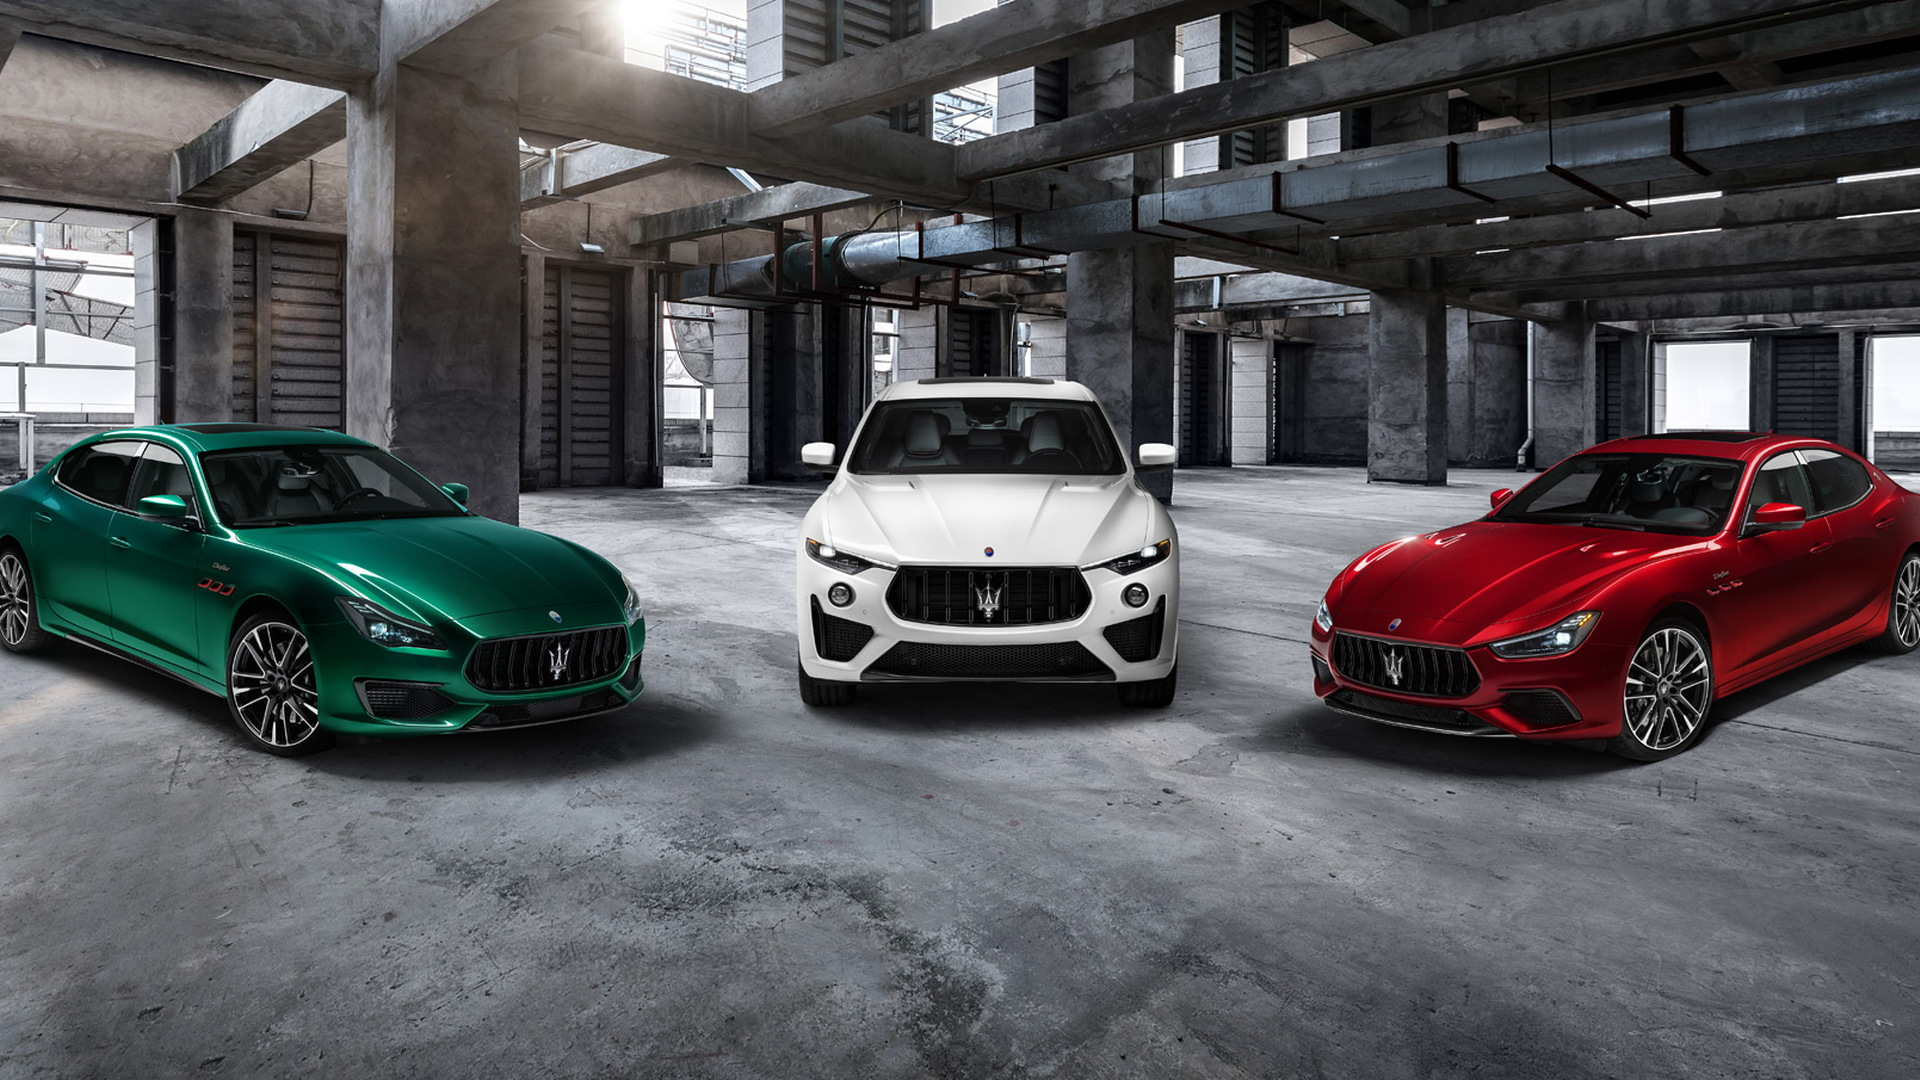 Trofeo versions of Maserati Ghibli, Quattroporte and Levante